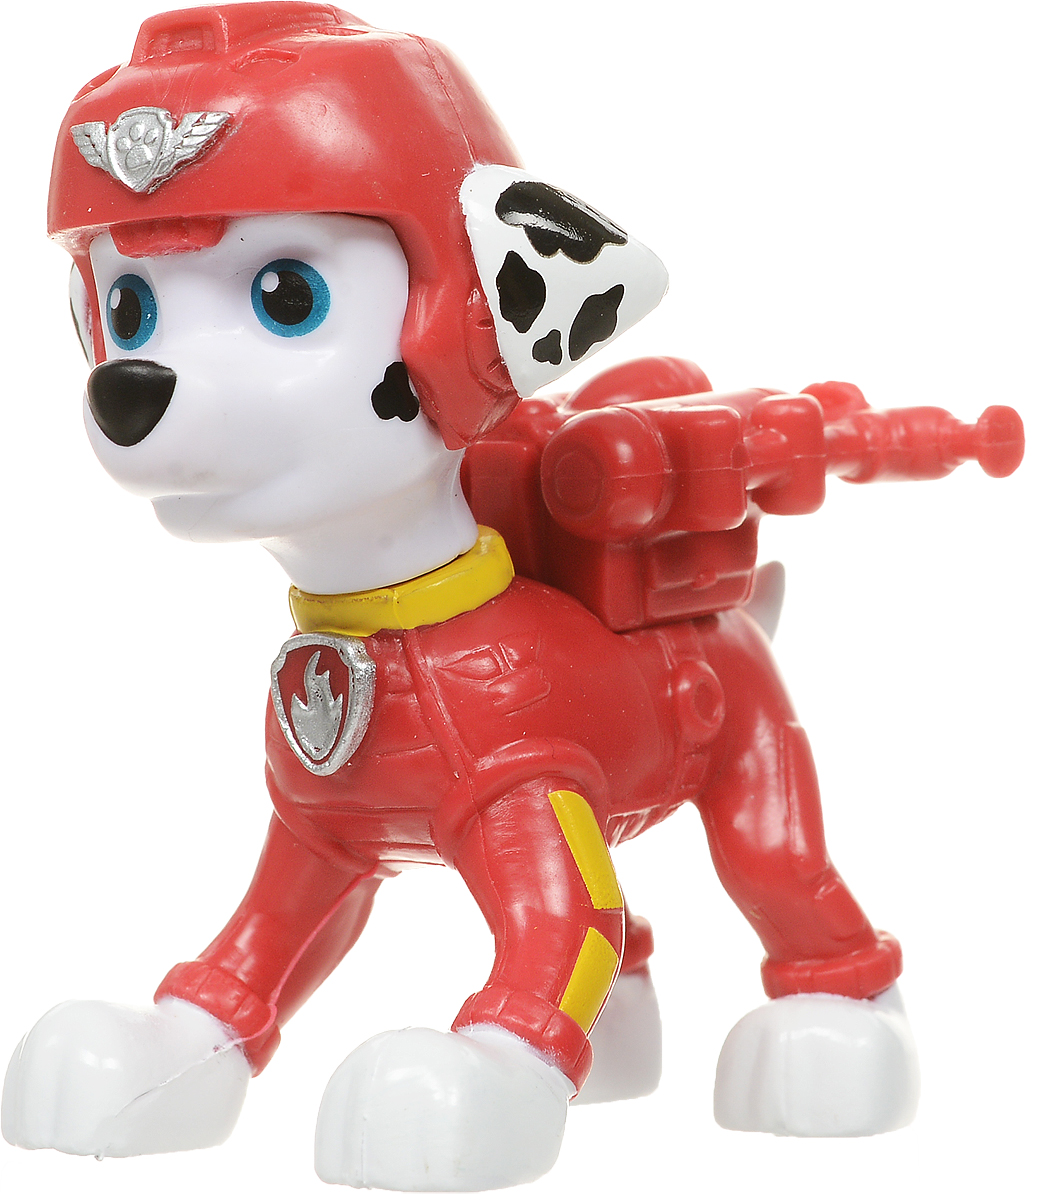 Paw Patrol Фигурка Marshall 16612_20078994 20cm canine patrol dog toys russian anime doll action figures car patrol puppy toy patrulla canina juguetes gift for child m134